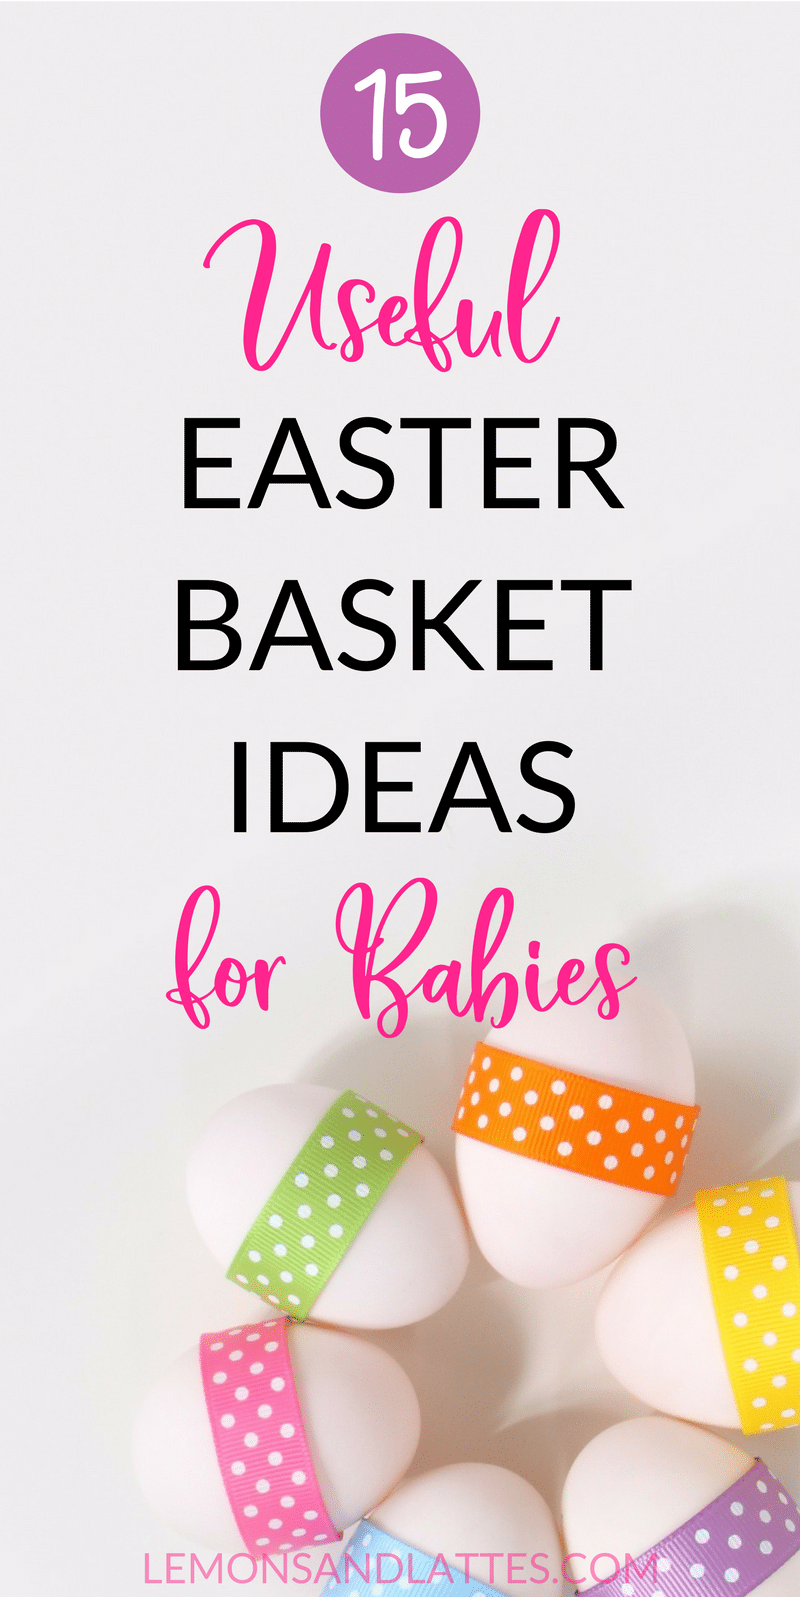 Are you wondering what in the world you can put in a baby's Easter basket? Here are 15 useful Easter basket ideas for babies! (No candy or eggs here!)